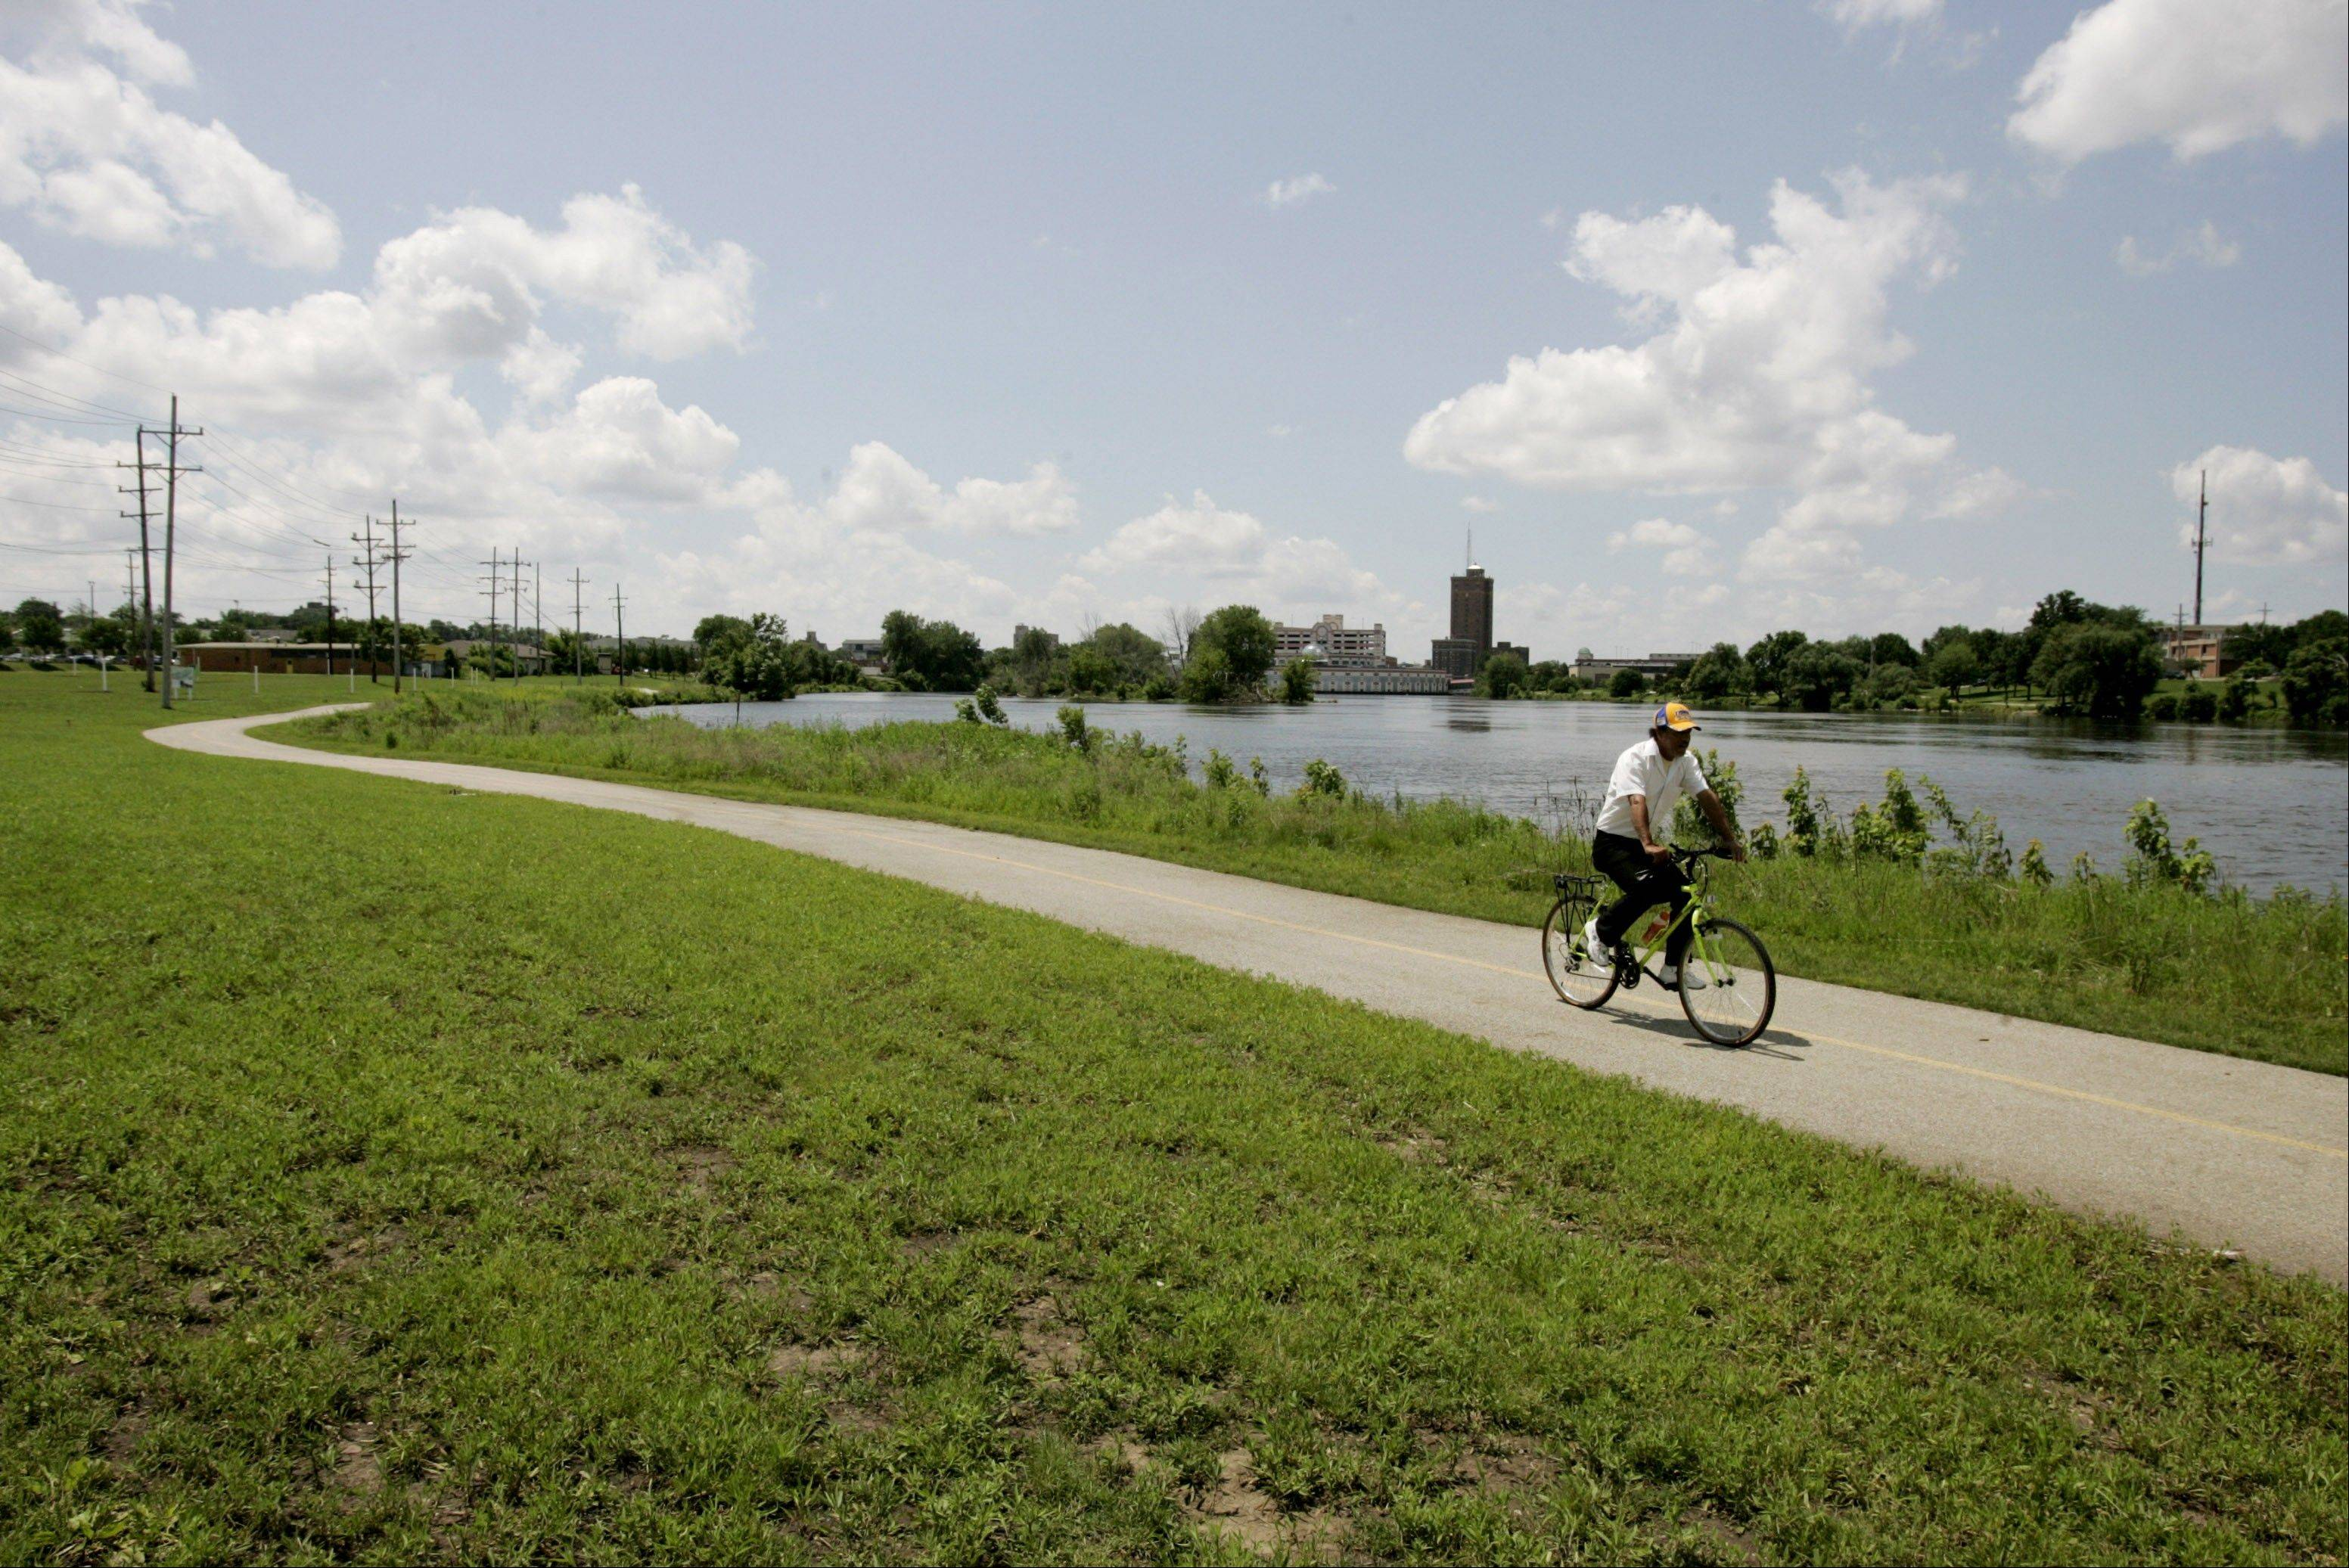 RiverEdge Park will be built on both sides of the Fox River just north of downtown Aurora.